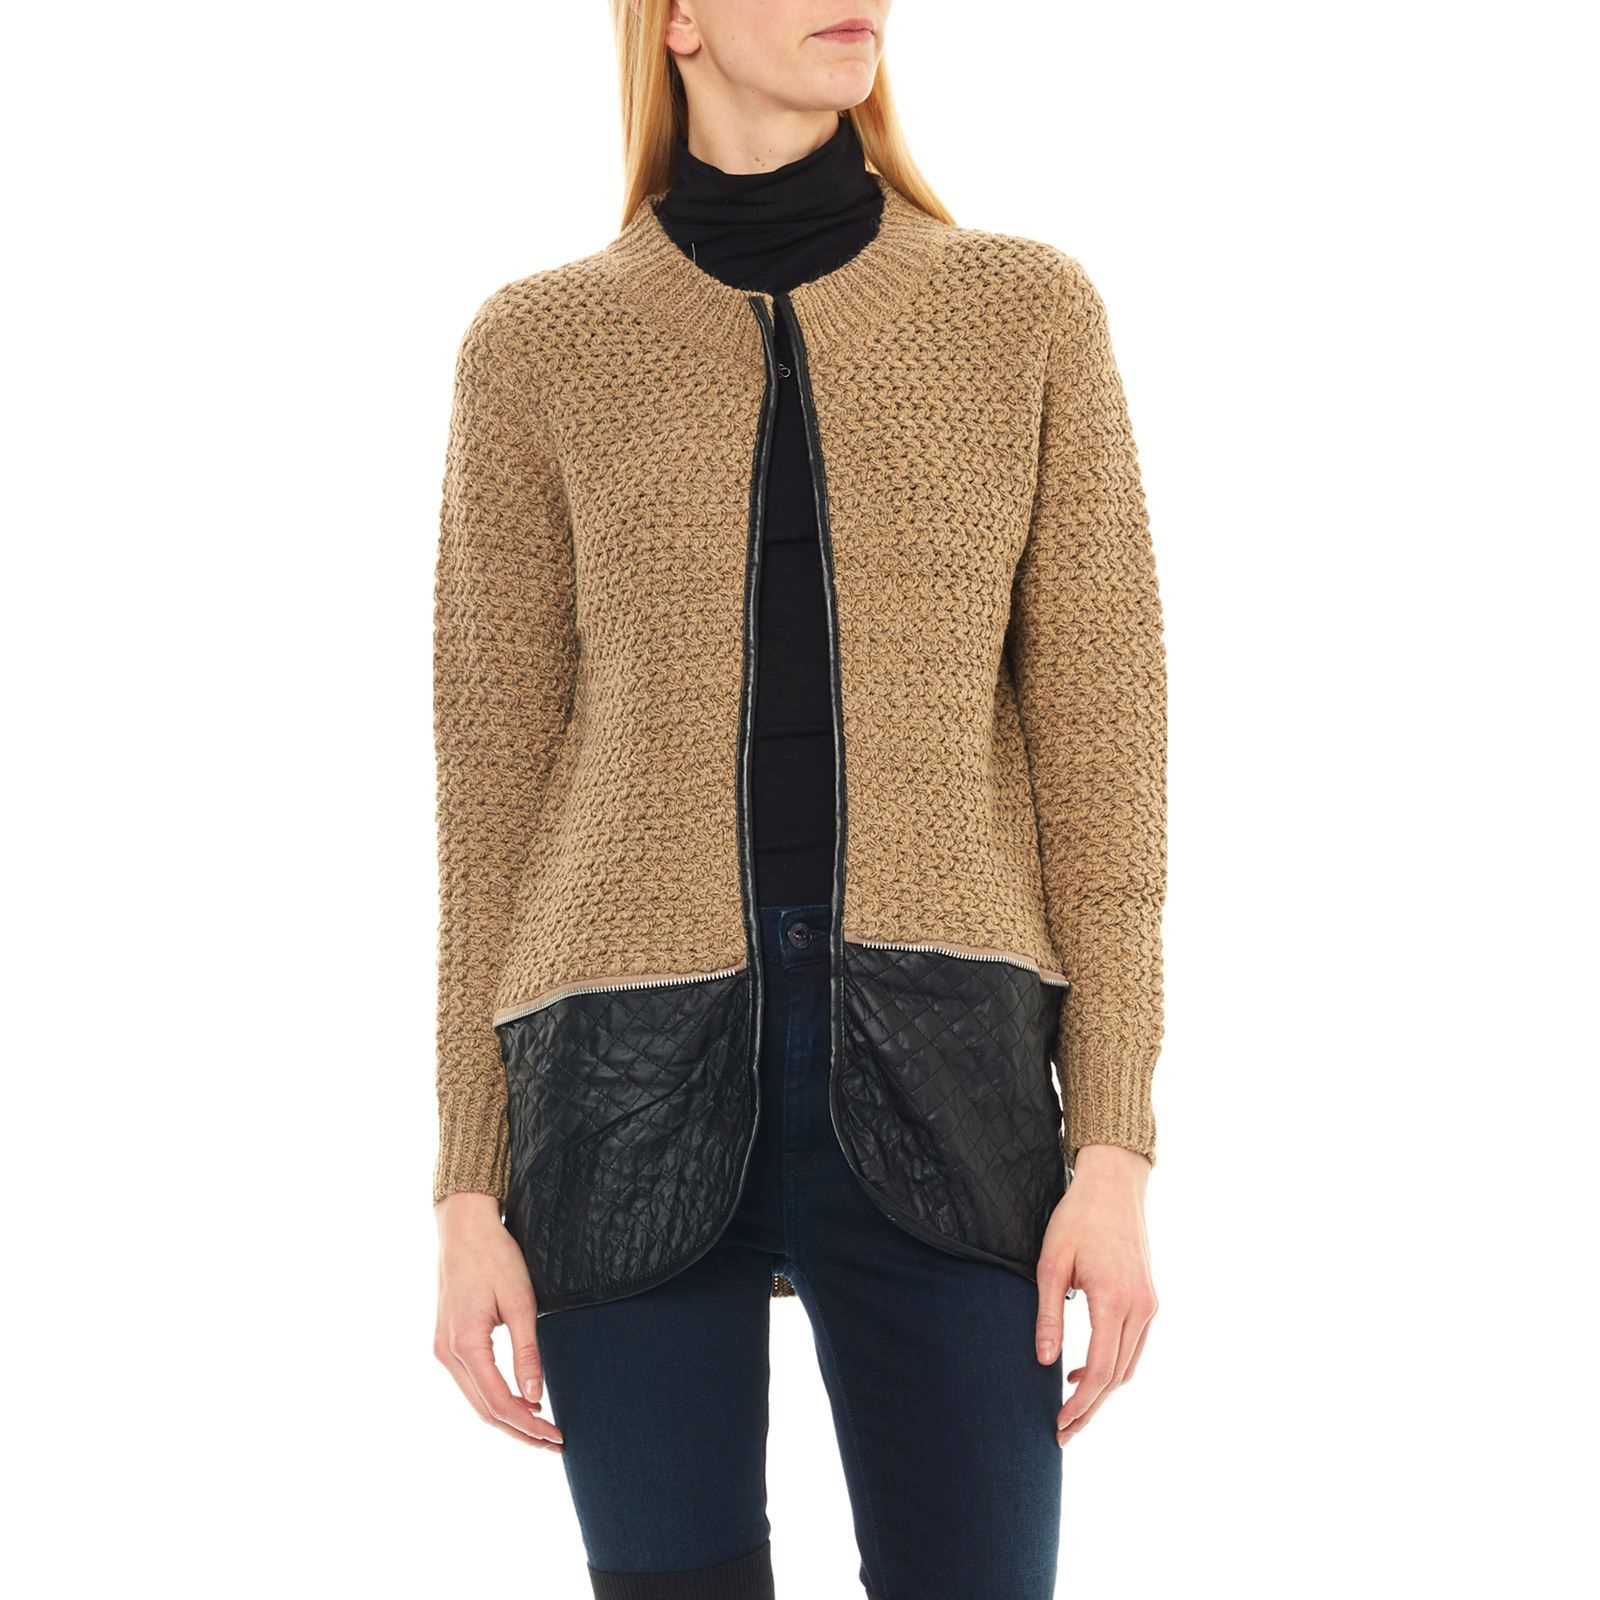 Brandalley Gilet Maille Et Cachemire Taupe IUwCI7pq